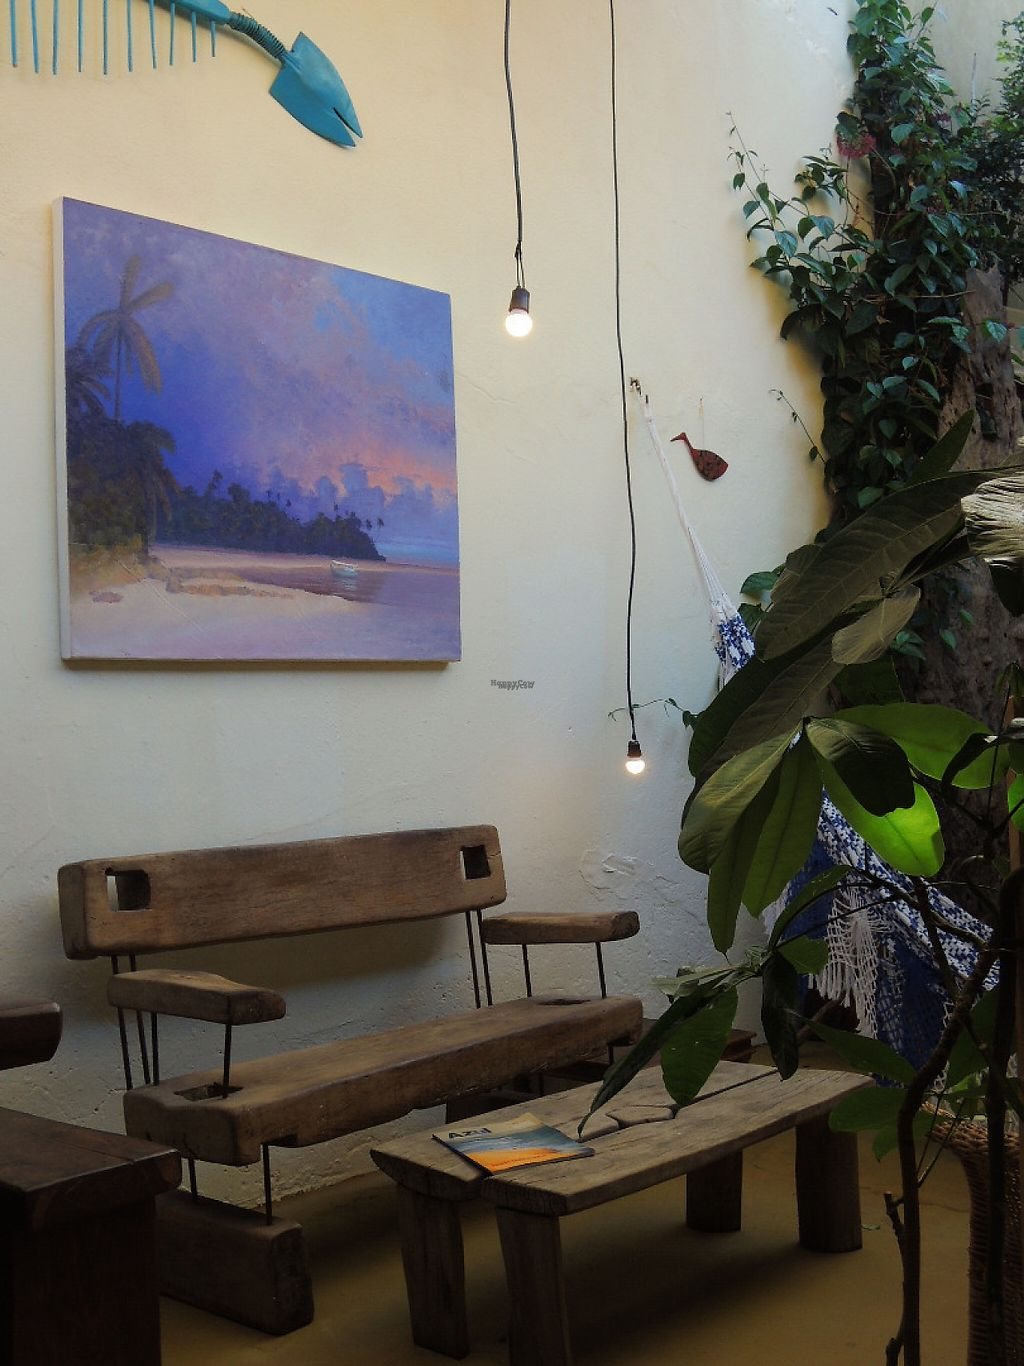 """Photo of Cafe Bizarro  by <a href=""""/members/profile/ClaudiaMorango"""">ClaudiaMorango</a> <br/>This vegan coffee shop is located in the backyard of a contemporary art gallery, Galeria 195. The setting is very pleasant in the morning or late afternoon <br/> December 31, 2016  - <a href='/contact/abuse/image/84782/206562'>Report</a>"""